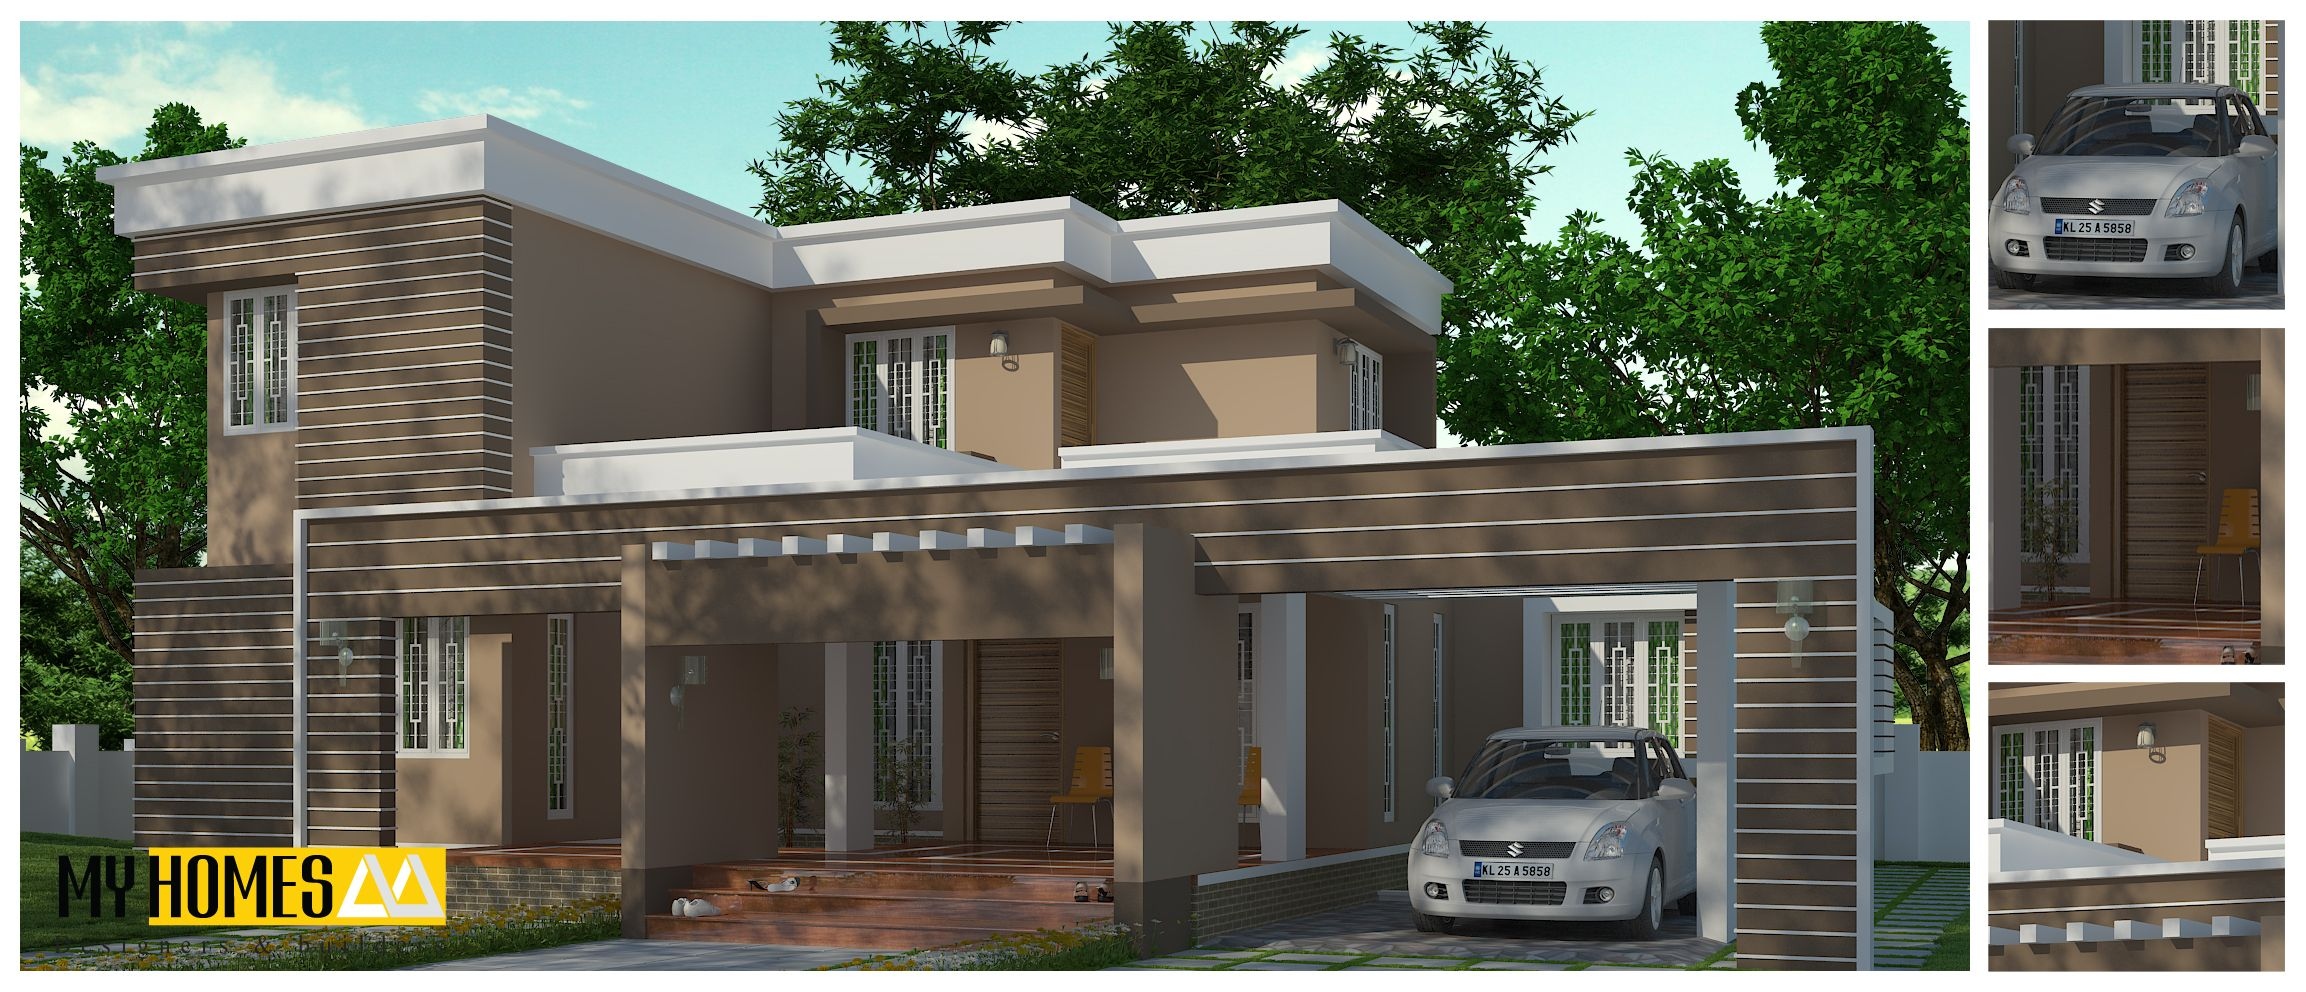 2375 sq ft contemporary house design ground floor 1 mater bed room with attached toilet